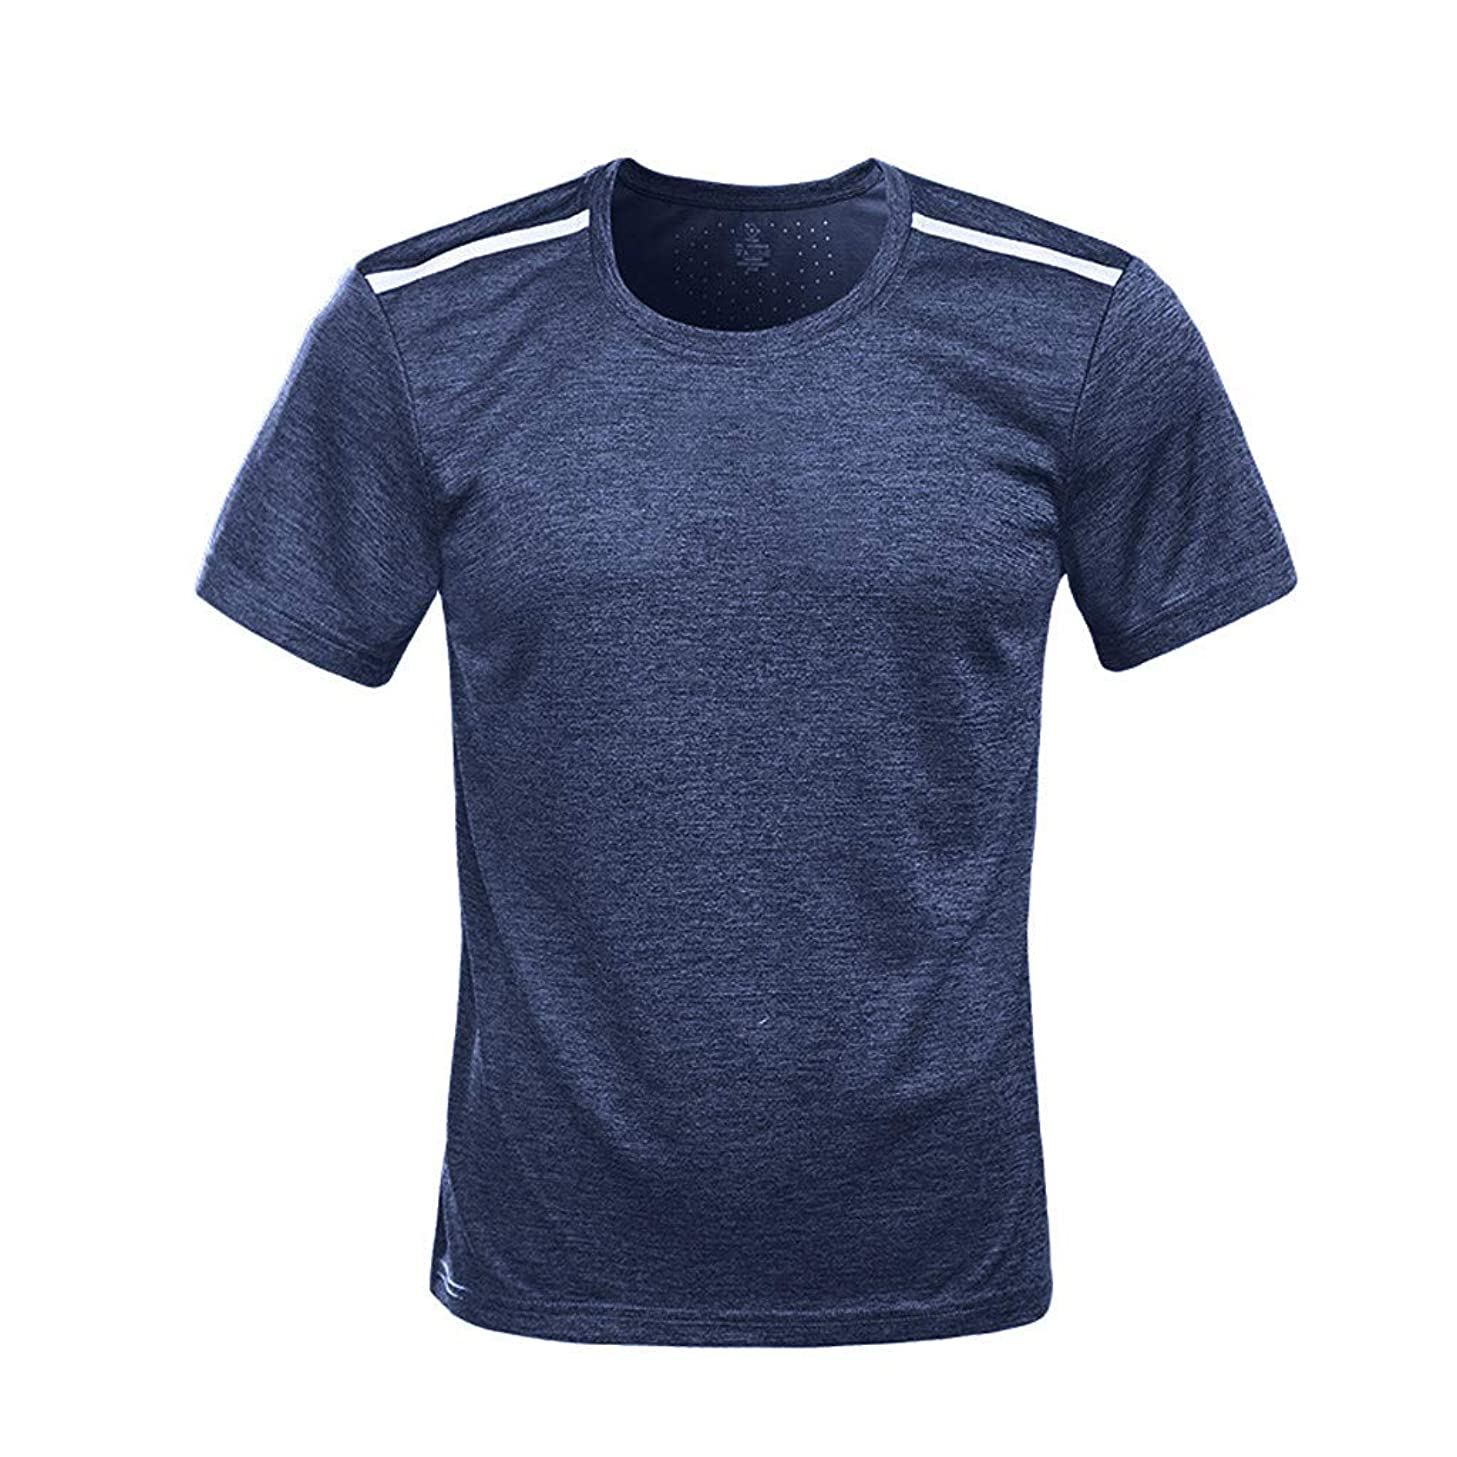 T-Shirt for Men Fast-Dry Short Sleeve Tee Crew Neck Fitness Sport Shirt Breathable Slim Fit Top